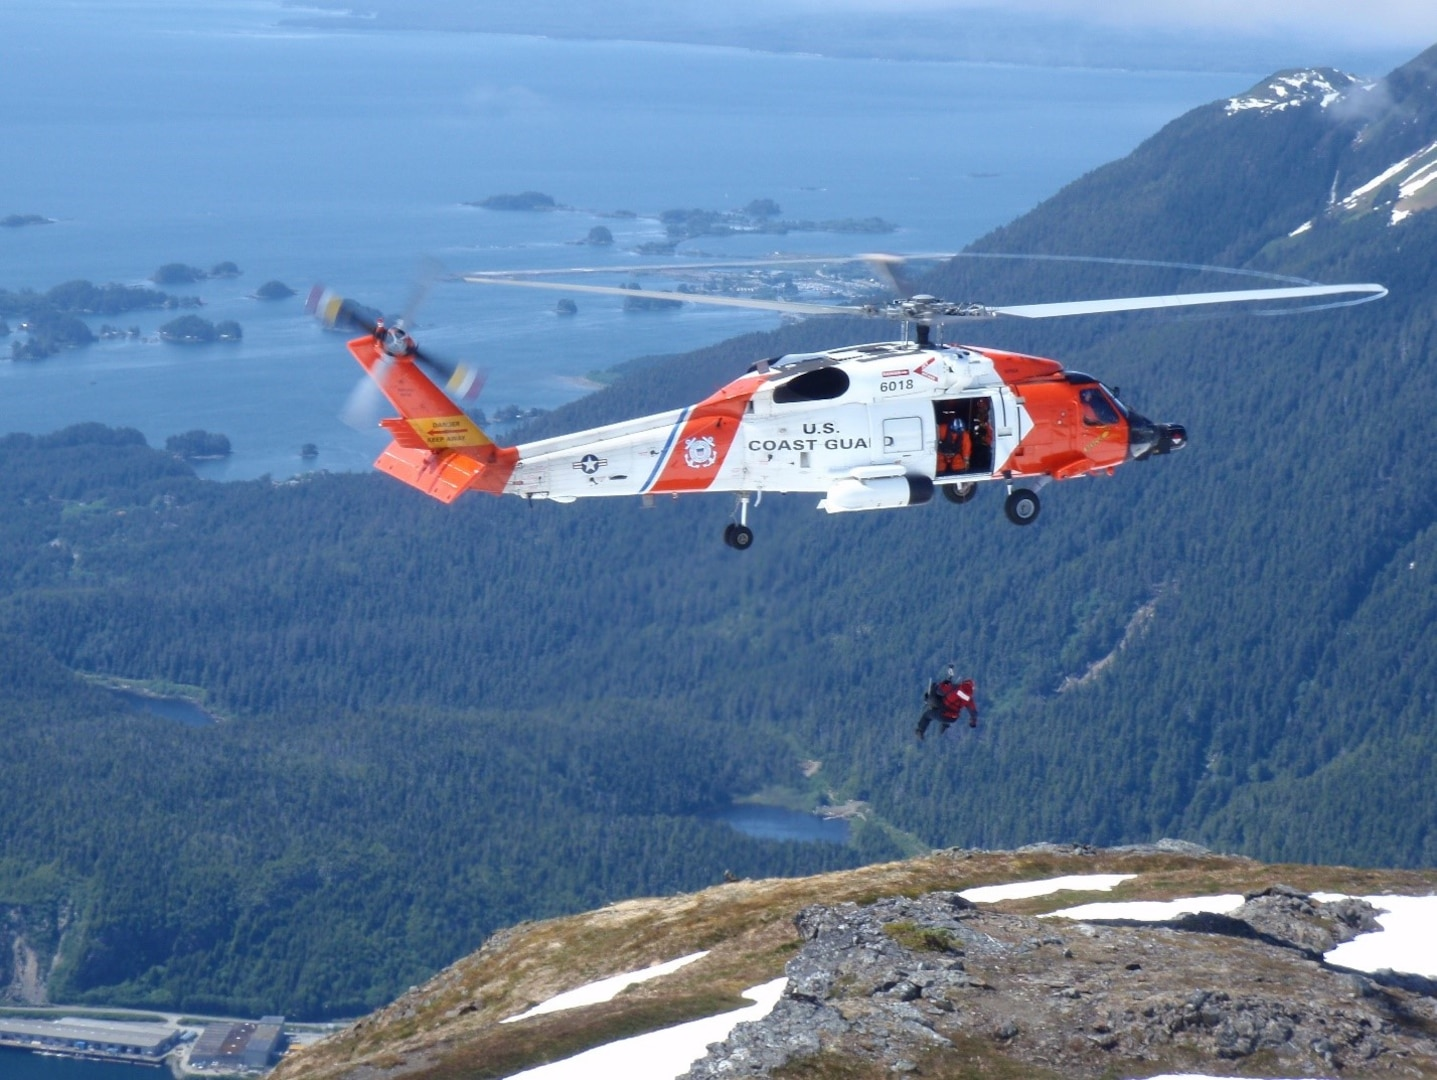 U.S. Coast Guard search and rescue crews are world renowned for their maritime rescue capabilities. The Coast Guard plays a role in search and rescue operations in remote, coastal locations like those found in and around the Tongass National Forest and Chugach National Forest in Alaska. (U.S. Coast Guard Air Station Sitka photo)